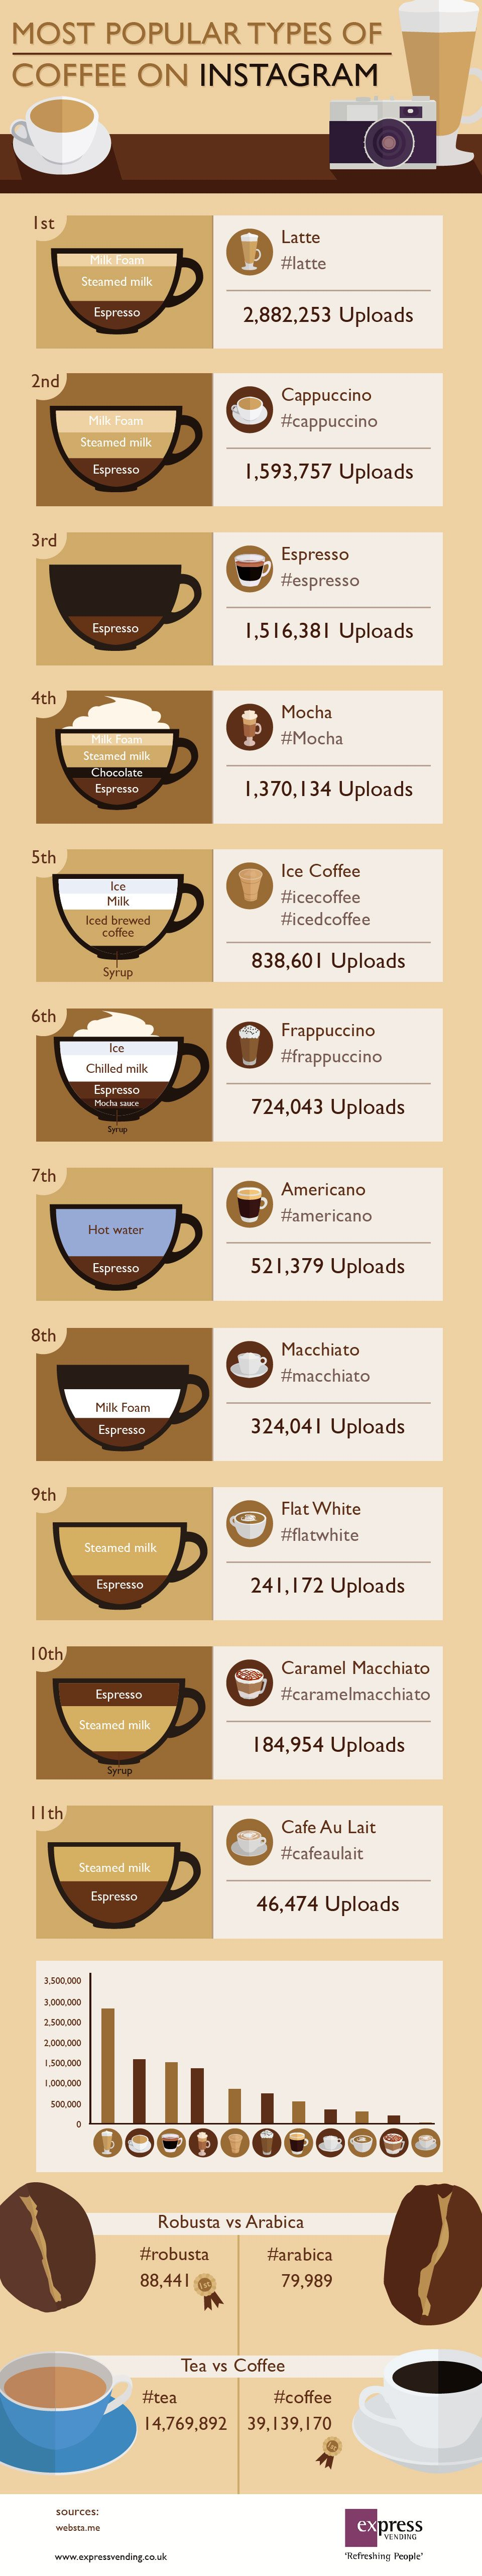 Most Popular Types of Coffee on Instagram